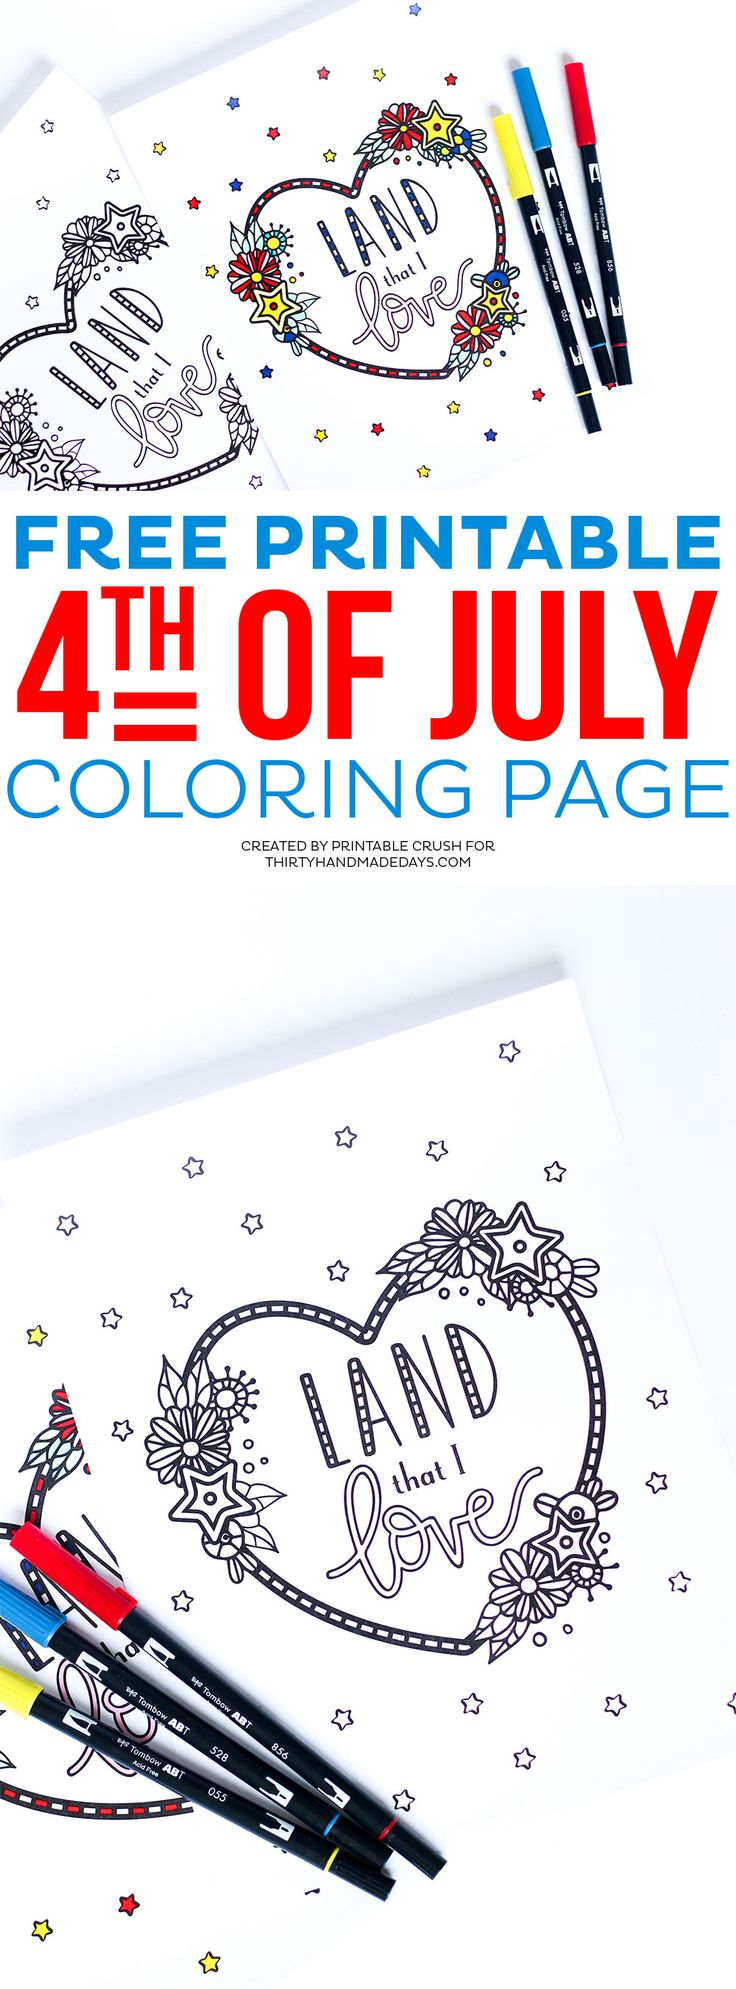 Coloring pages for dots for 4 of july - 4th Of July Coloring Page